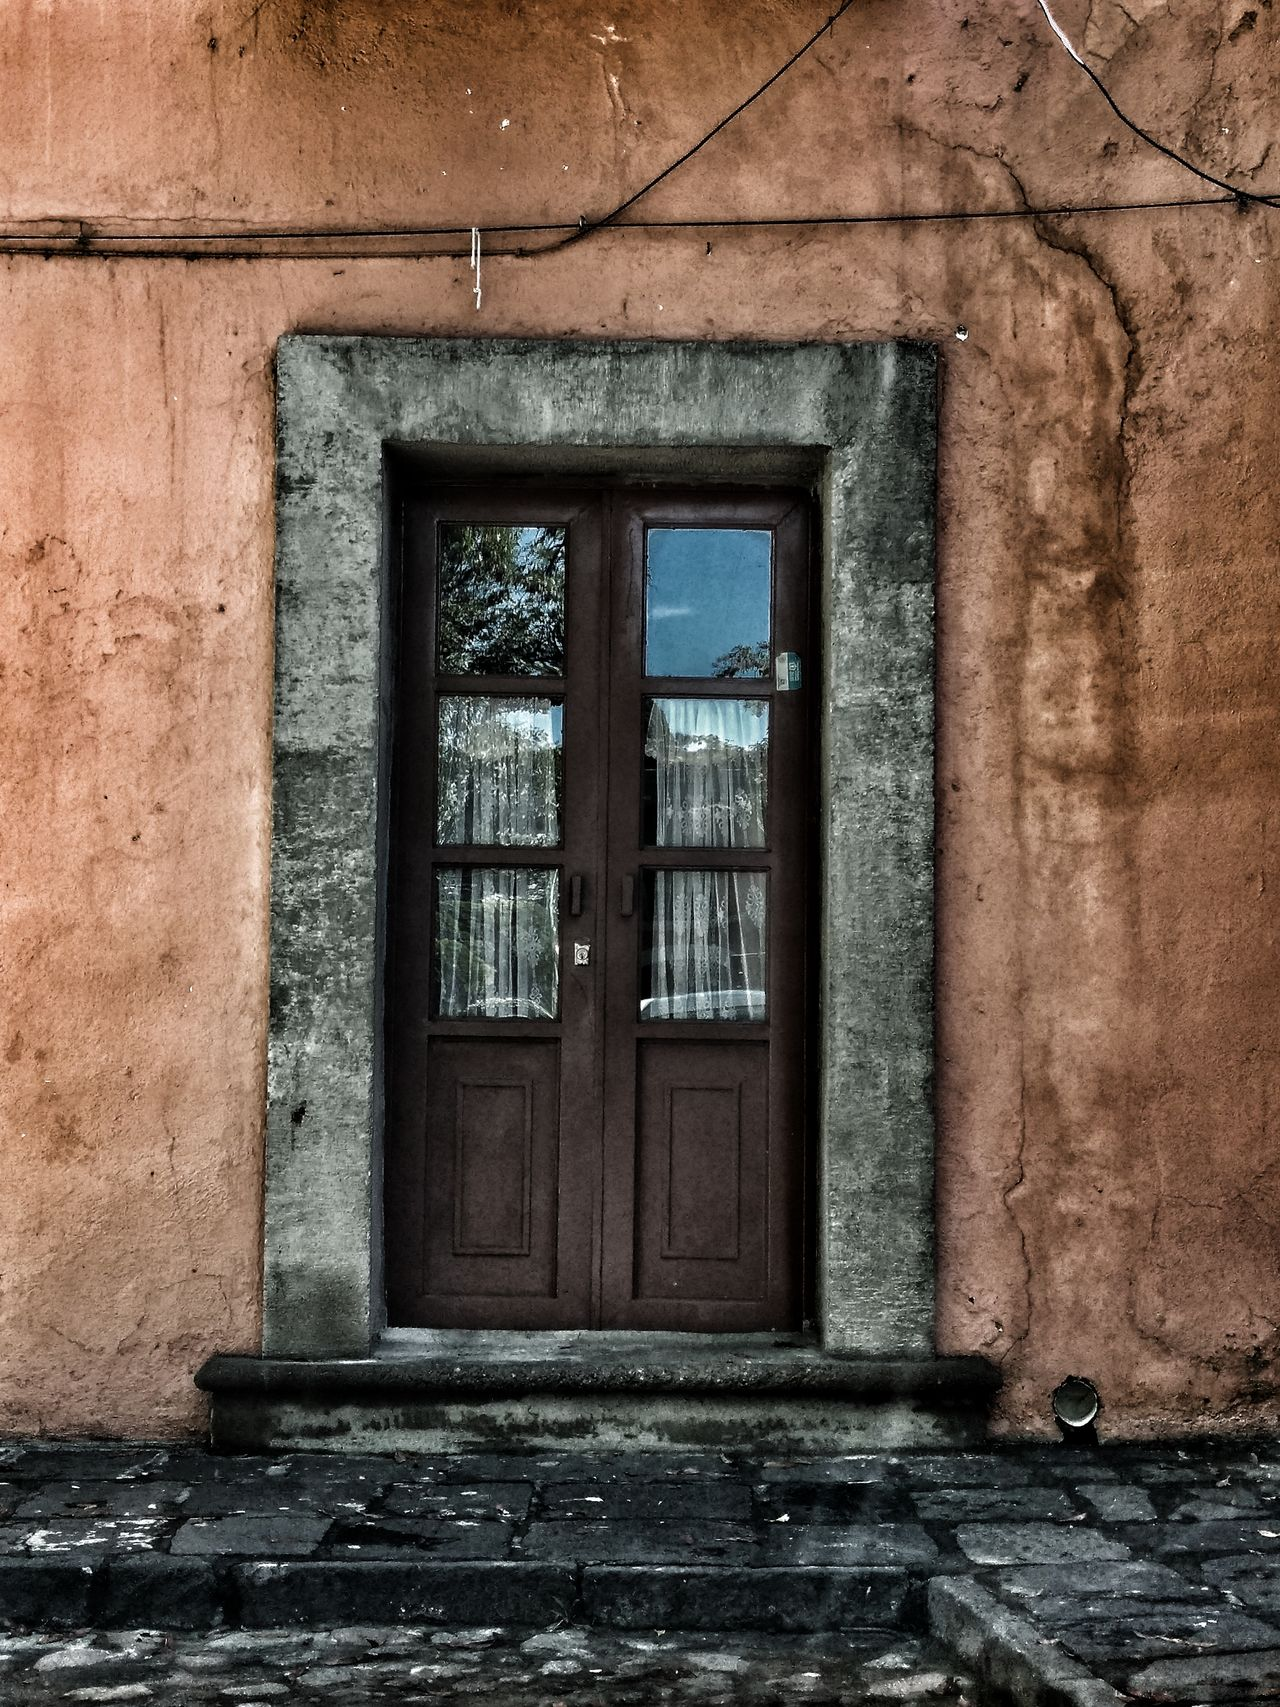 Old Door Architecture Window Built Structure Building Exterior Damaged Deterioration Bad Condition Obsolete Weathered Day History Outdoors No People Historic Window Frame Wall EyeEm Best Shots Talking Photo Filmphotography House Door Old Buildings From My Point Of View Fragility